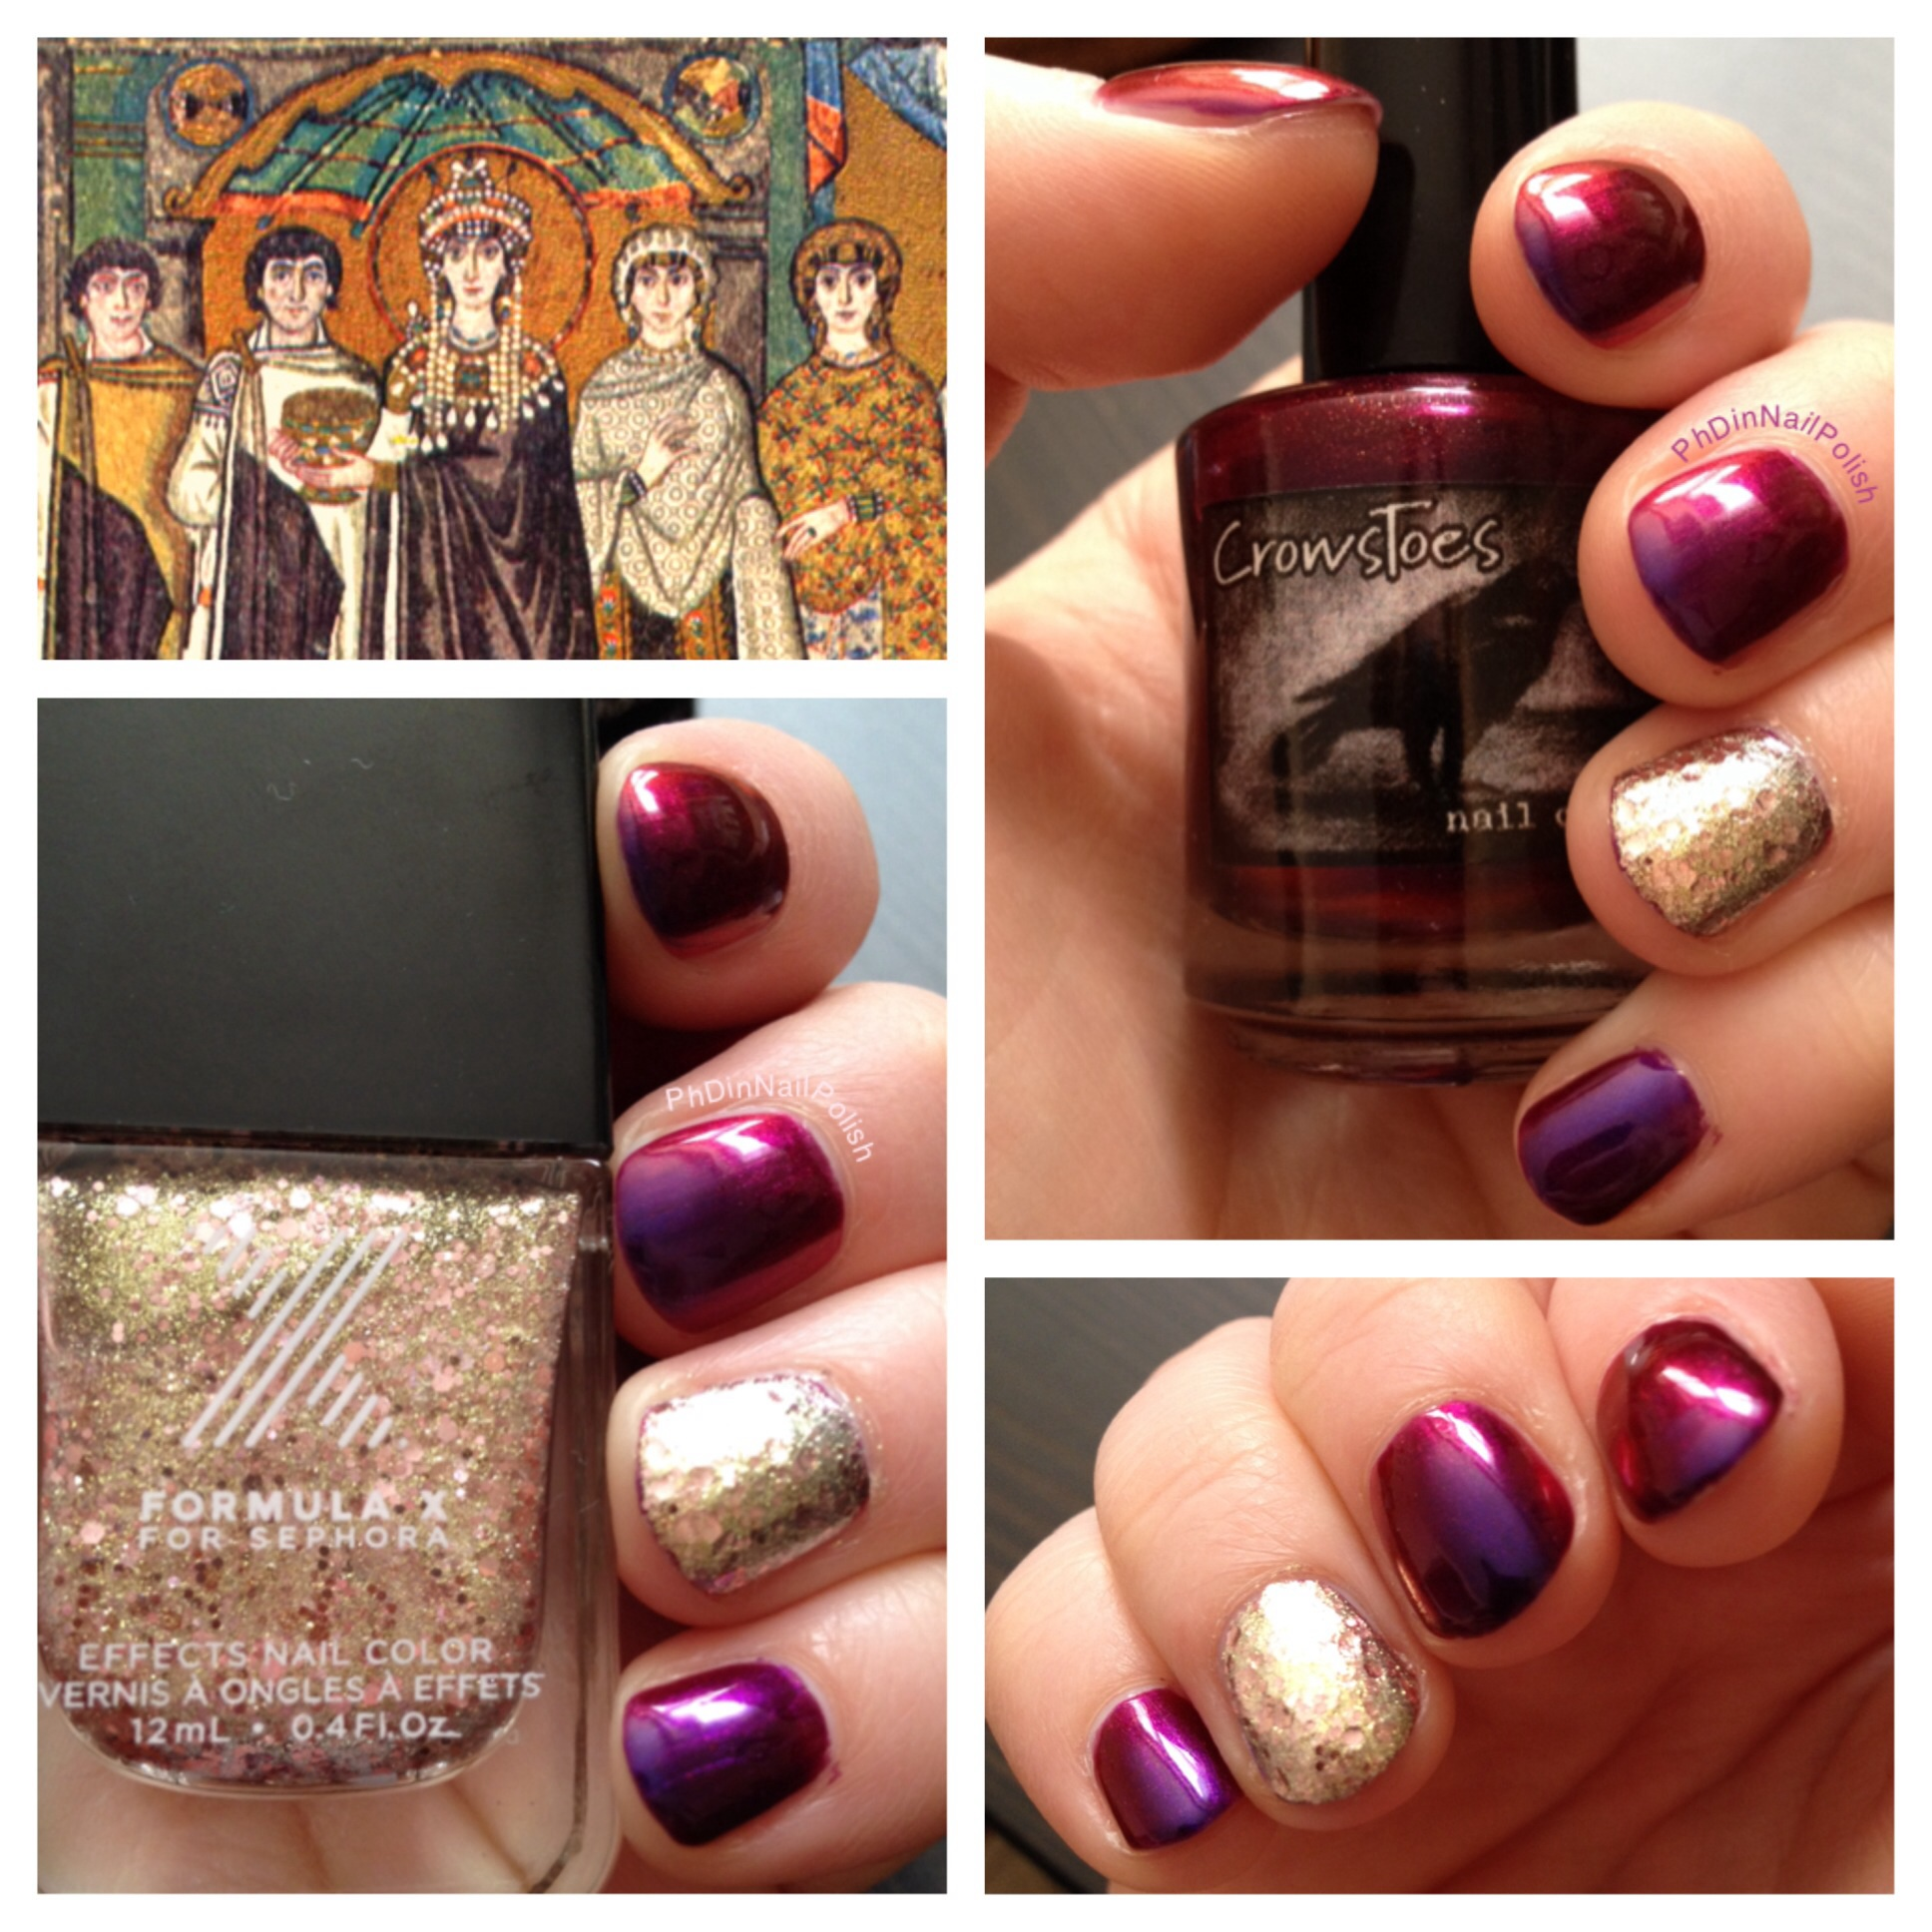 Nail Art History 101 Byzantine Mosaics With Crowstoes And Sephora